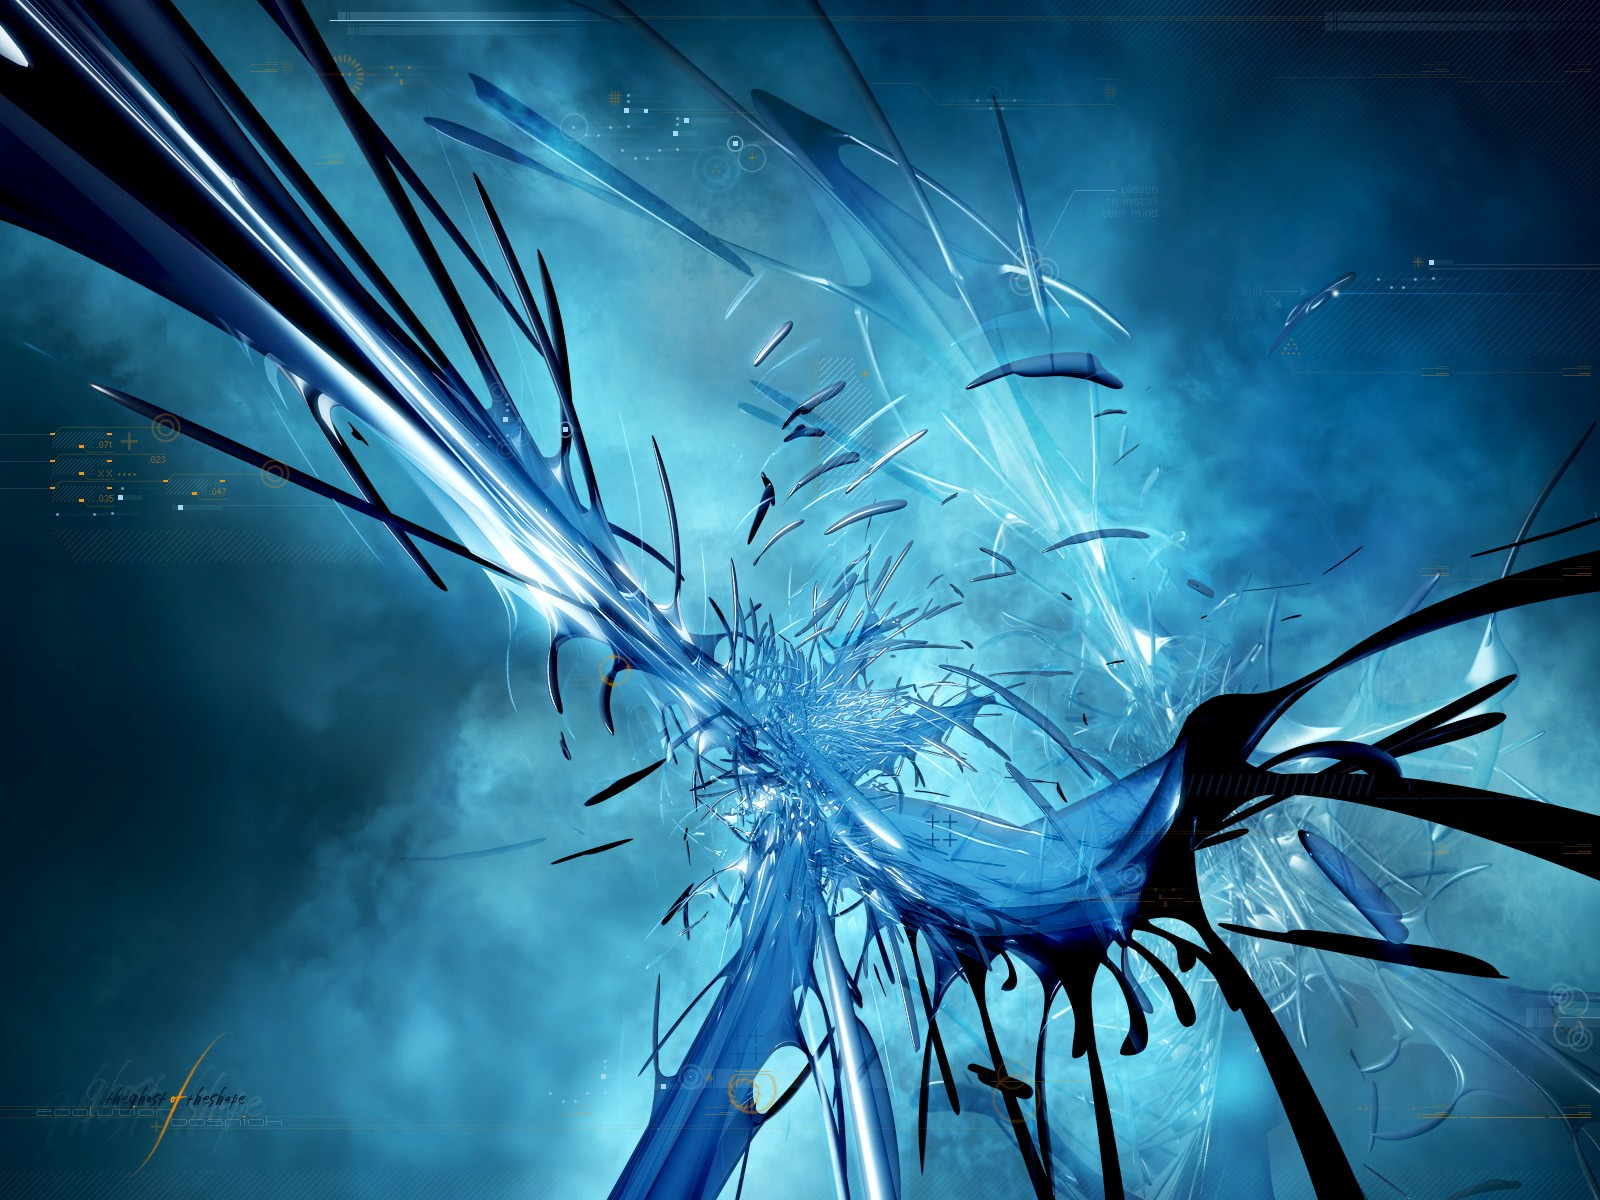 awesome artwork 3d blue wallpaper - photo #20